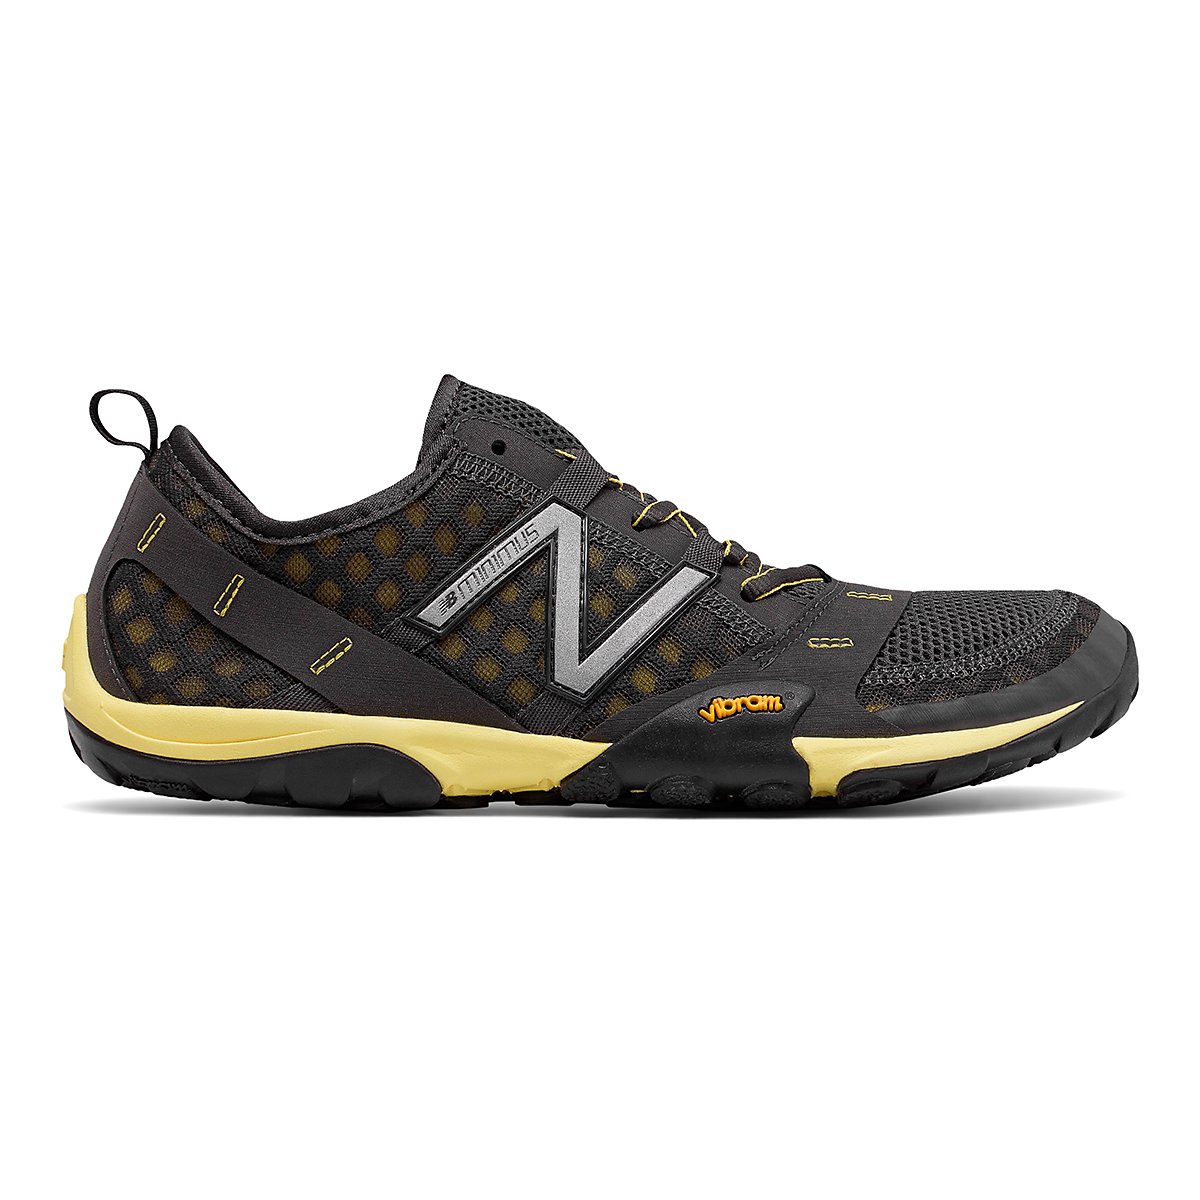 Men's New Balance Minimus T10V1 Trail Running Shoe - Color: Grey/Yellow - Size: 5 - Width: Wide, Grey/Yellow, large, image 1